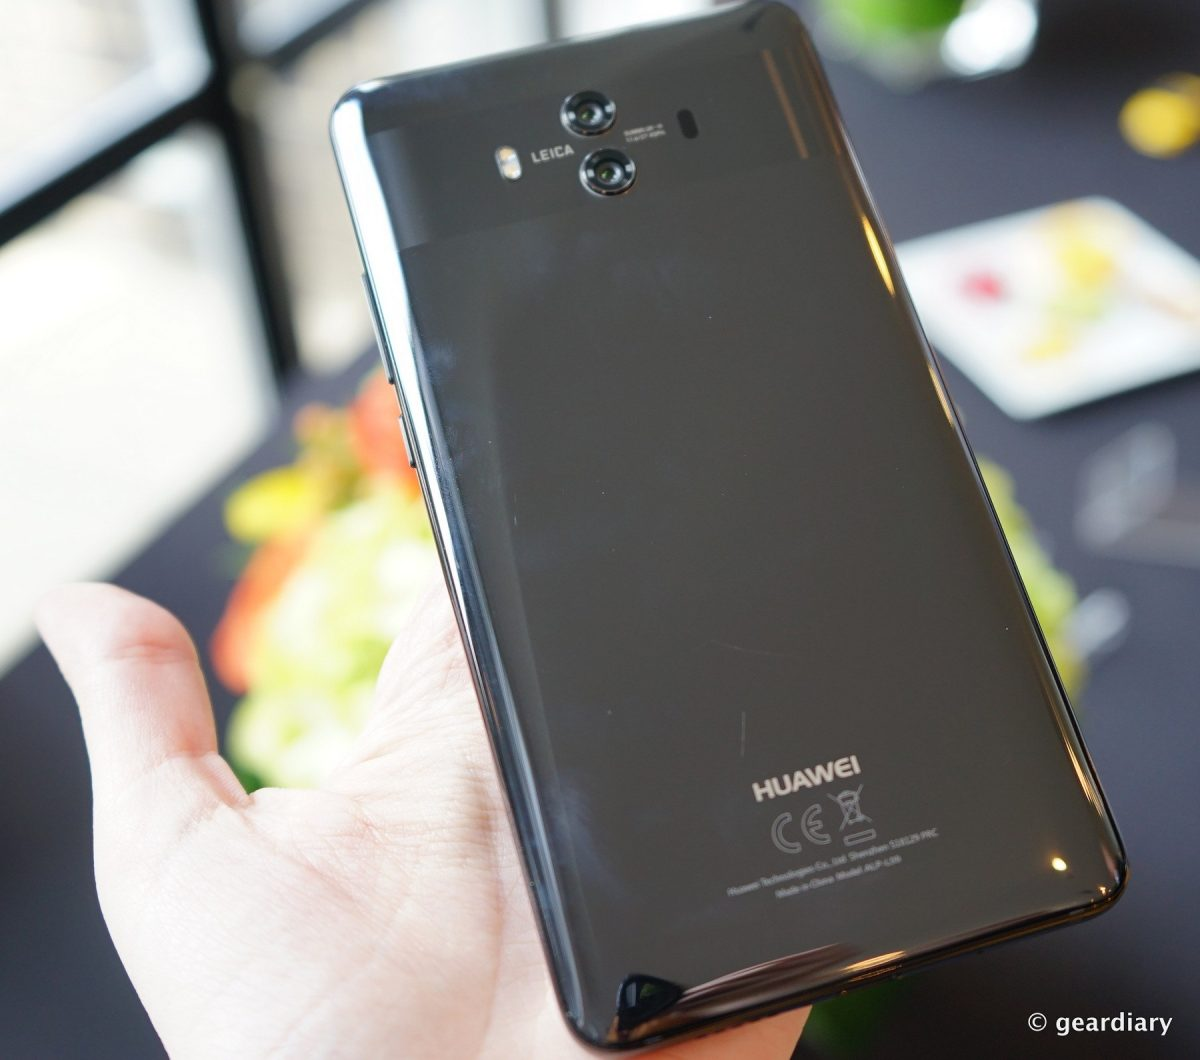 Huawei Mate 10 and Mate 10 Pro: Artificial Intelligence Makes them Magnificent